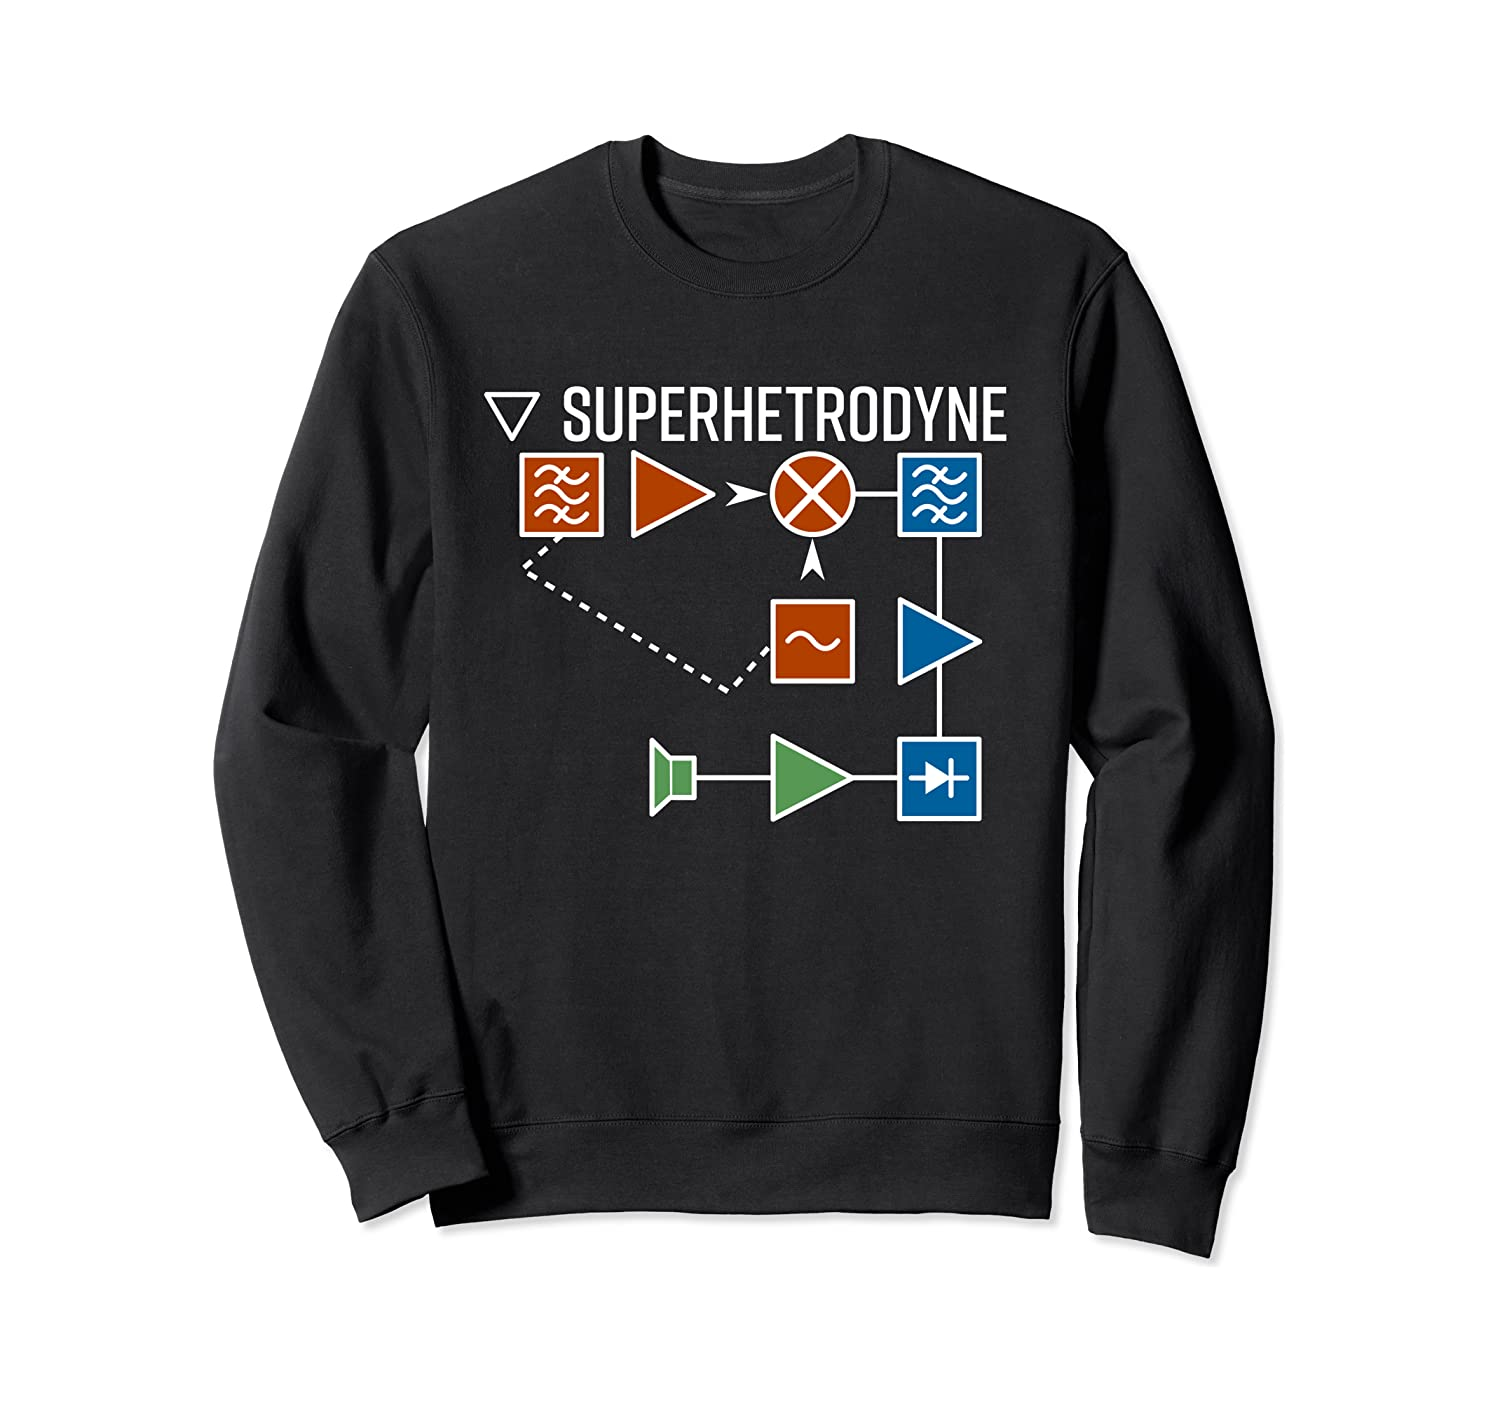 Superheterodyne Old School Radio Operator Lustiges HAM Radio Sweatshirt